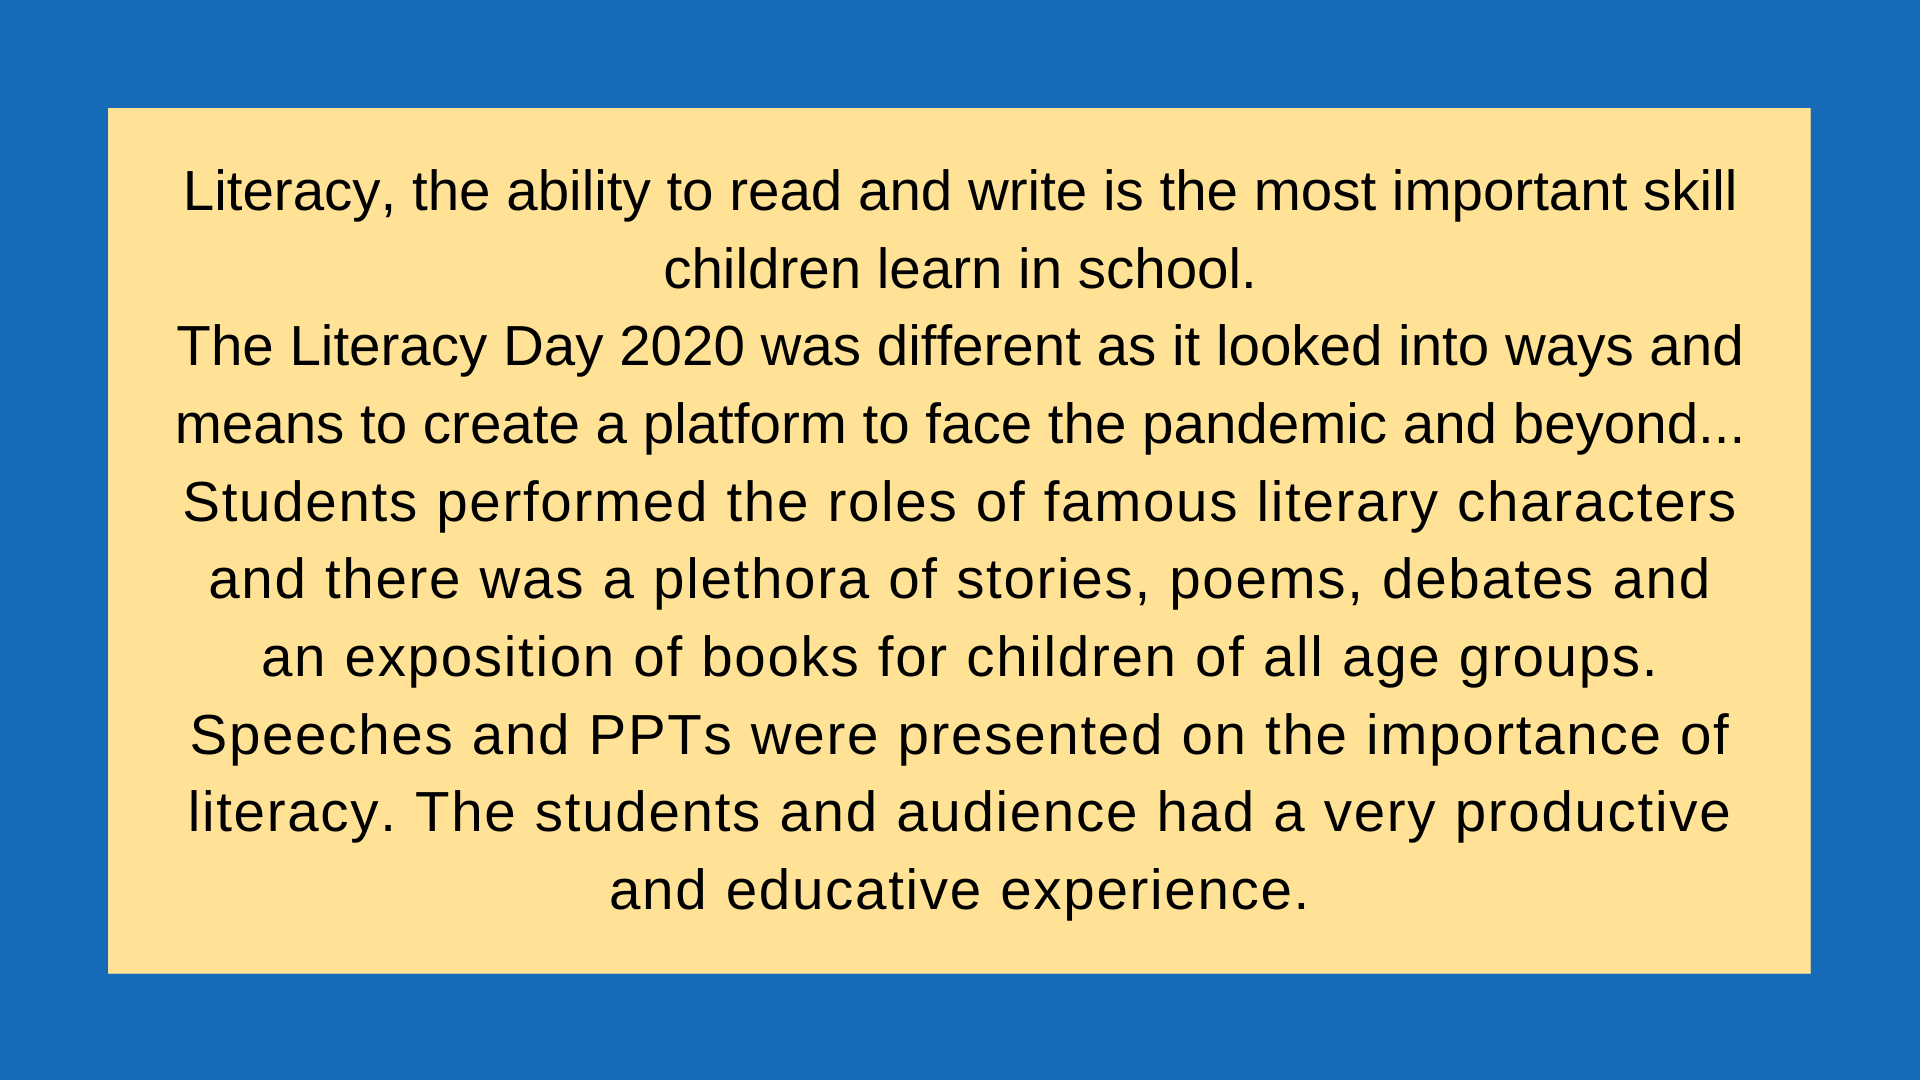 Literacy, the ability to read and write